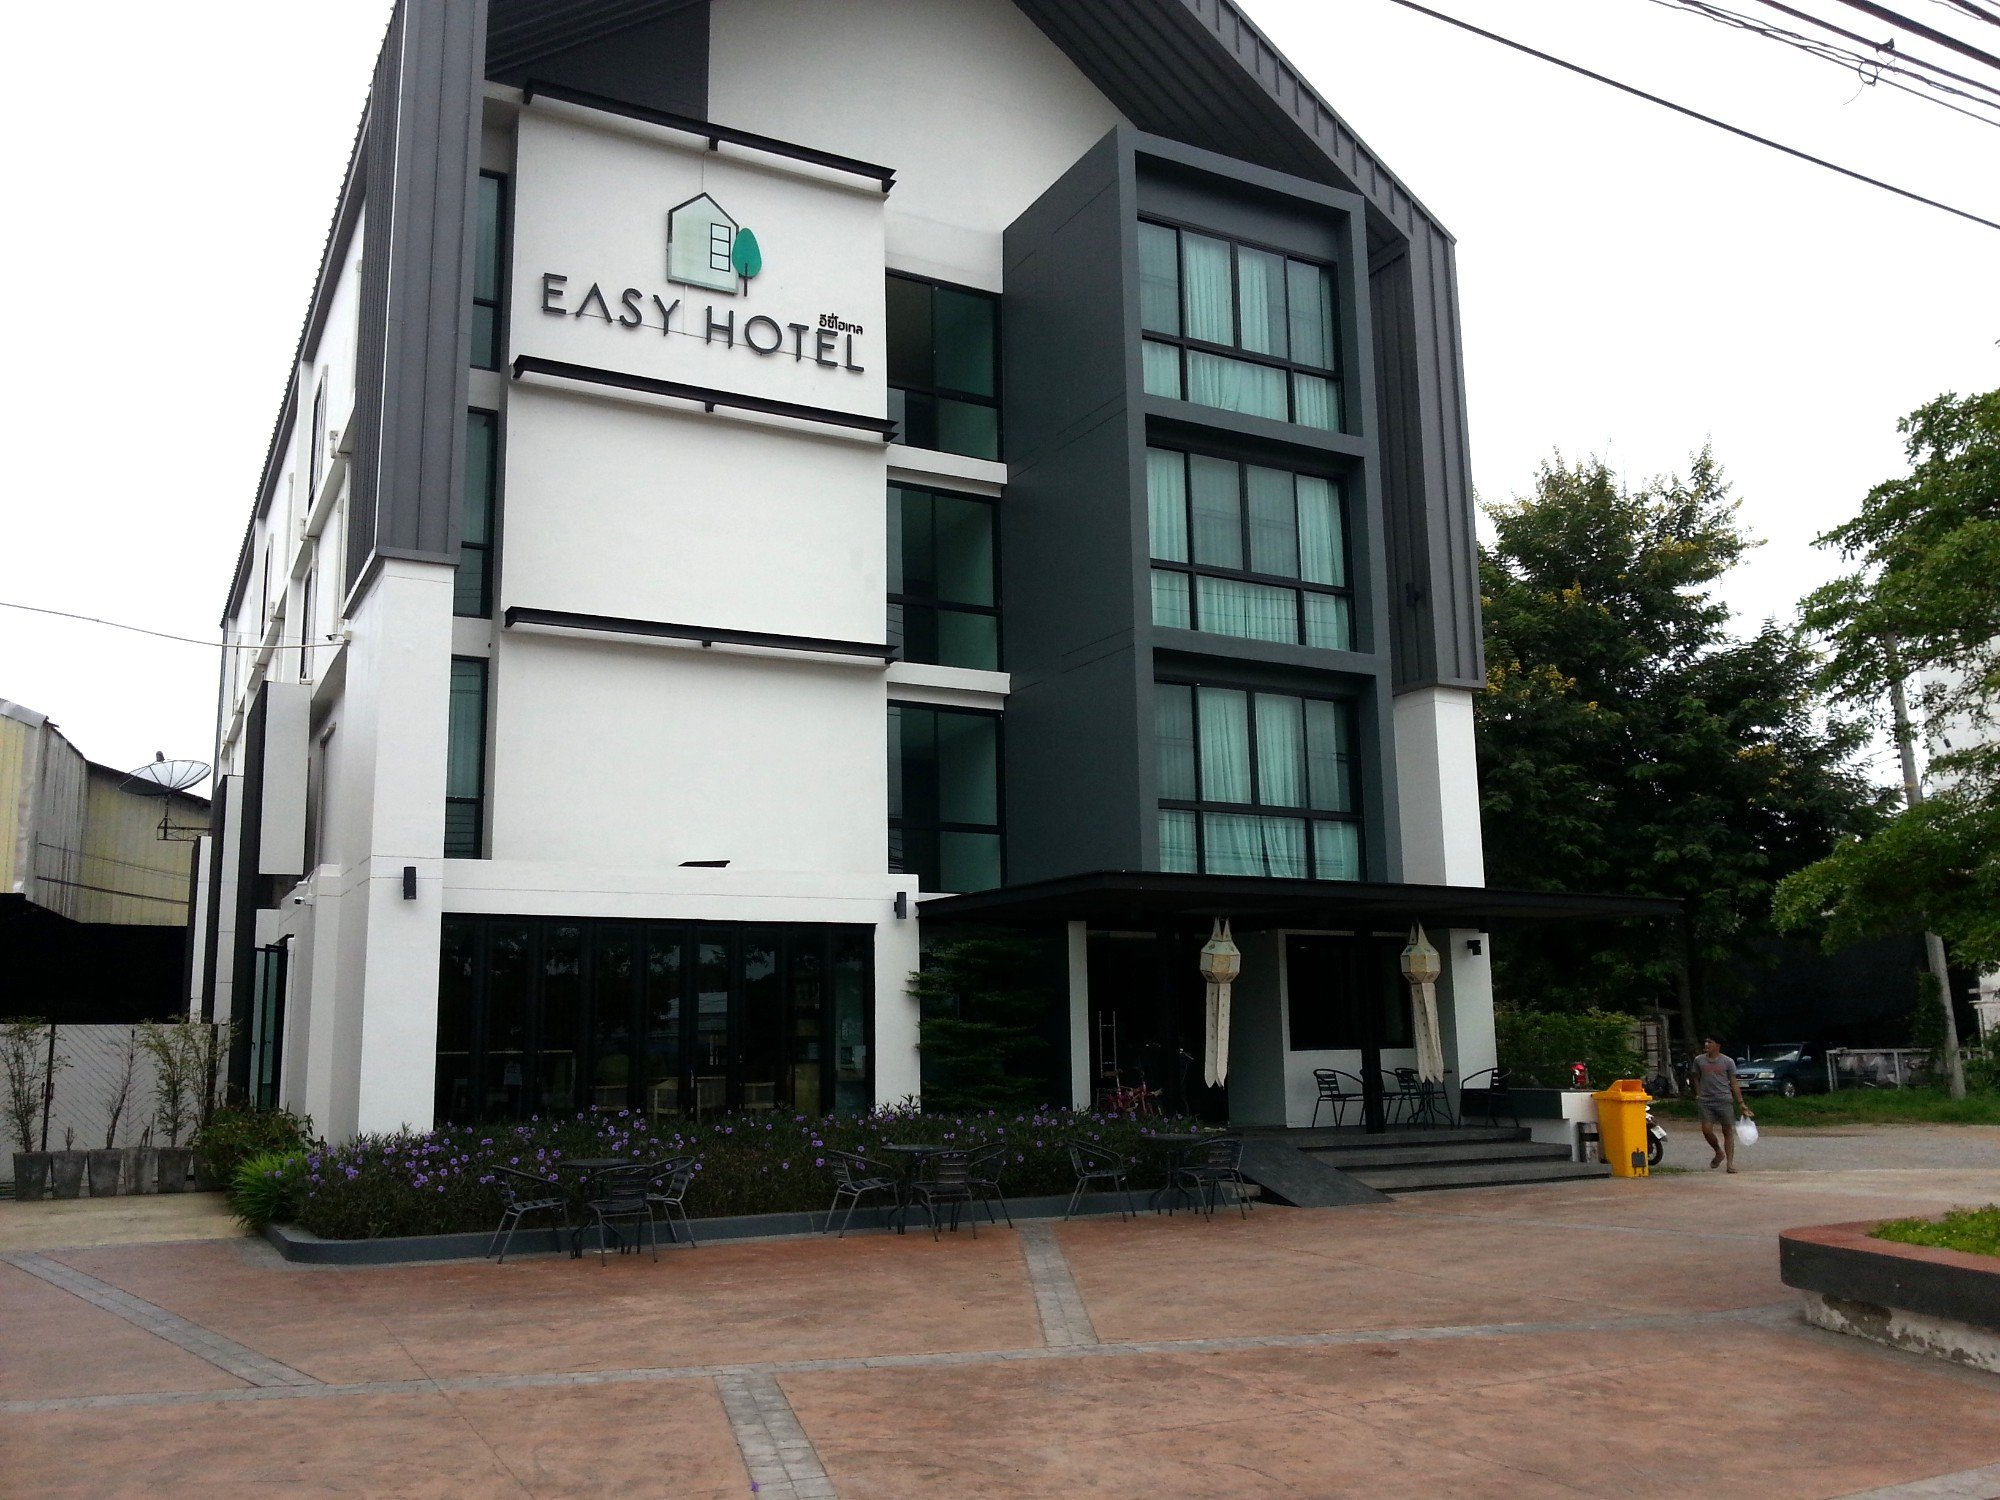 Easy Hotel in Lamphun